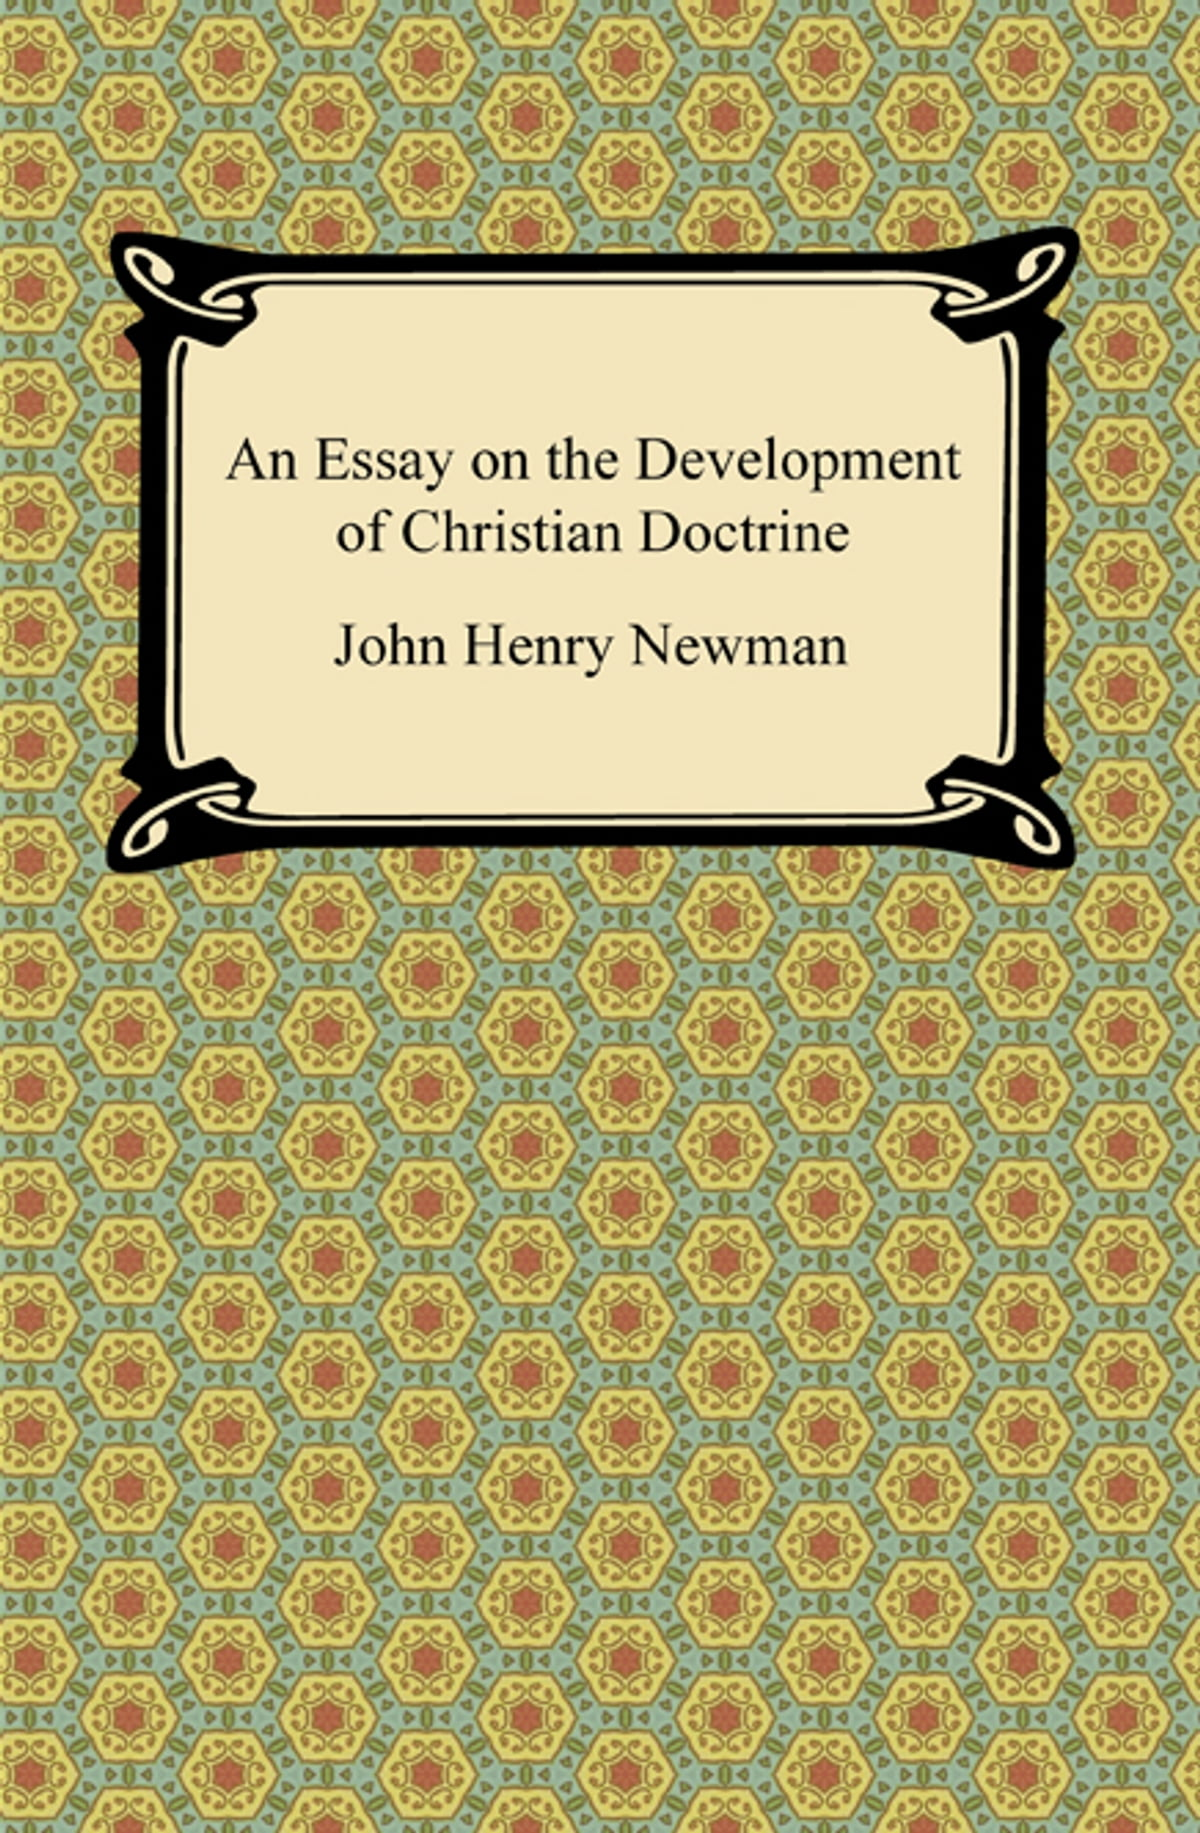 essay development christian doctrine What determines real christian doctrine how have the primary tenets of christian theology come out of biblical texts that do not explicitly provide for such conclusions.